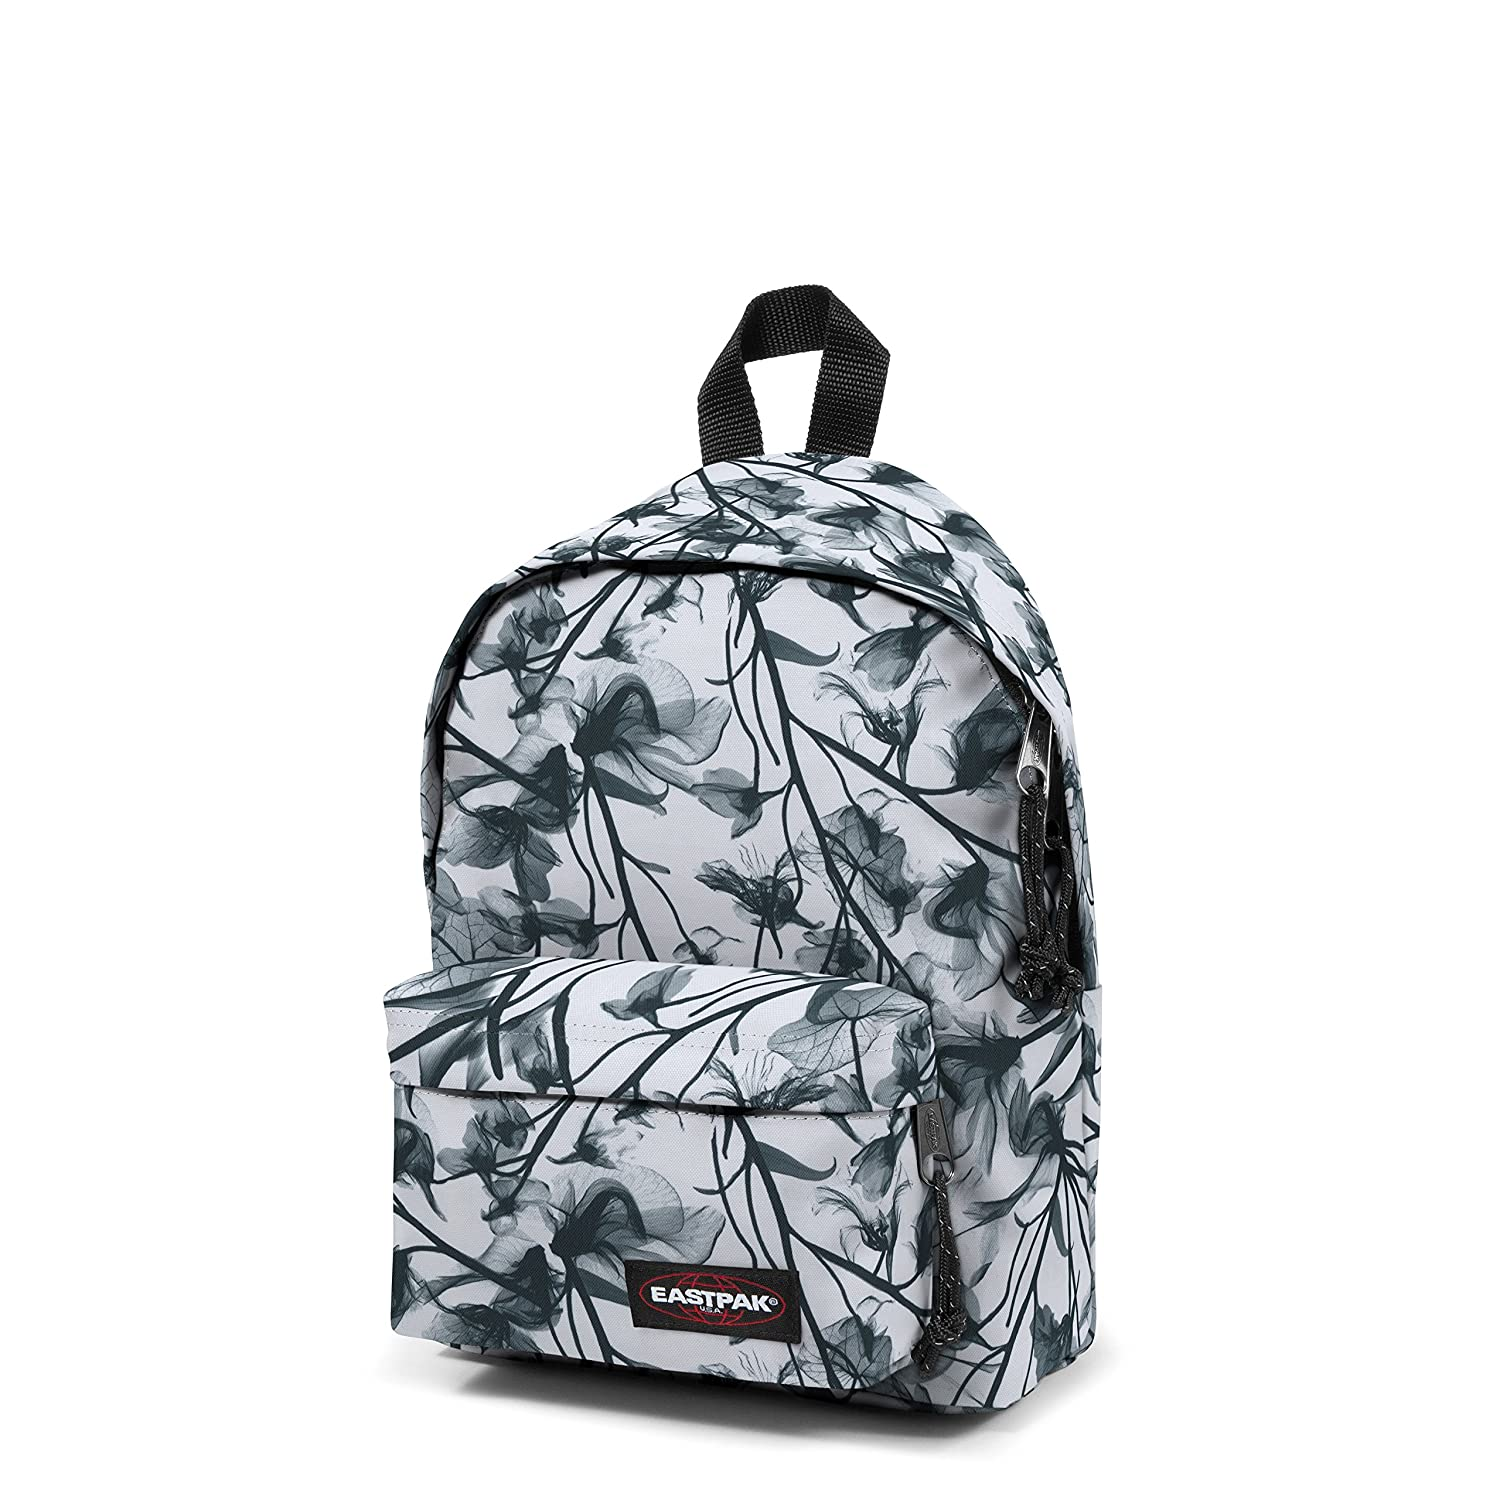 Eastpak Orbit Collection Authentic Backpacks Black Ray Padded Pakamp039r Backpack Quilt Sunday 335x23x15cm Flower Zaino Sports Outdoors